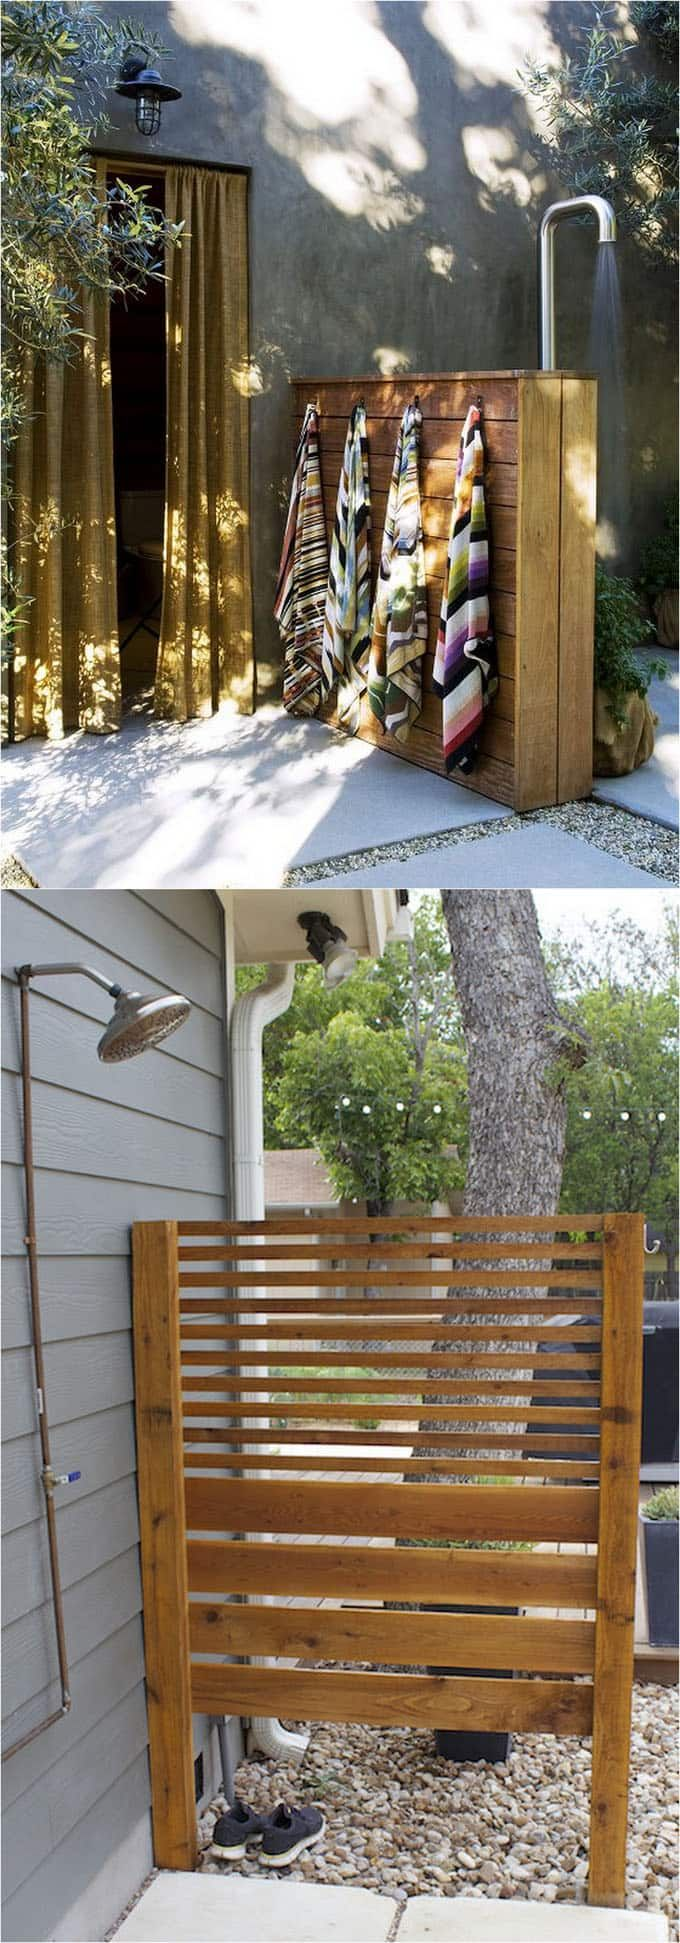 16 DIY Outdoor Shower Ideas A